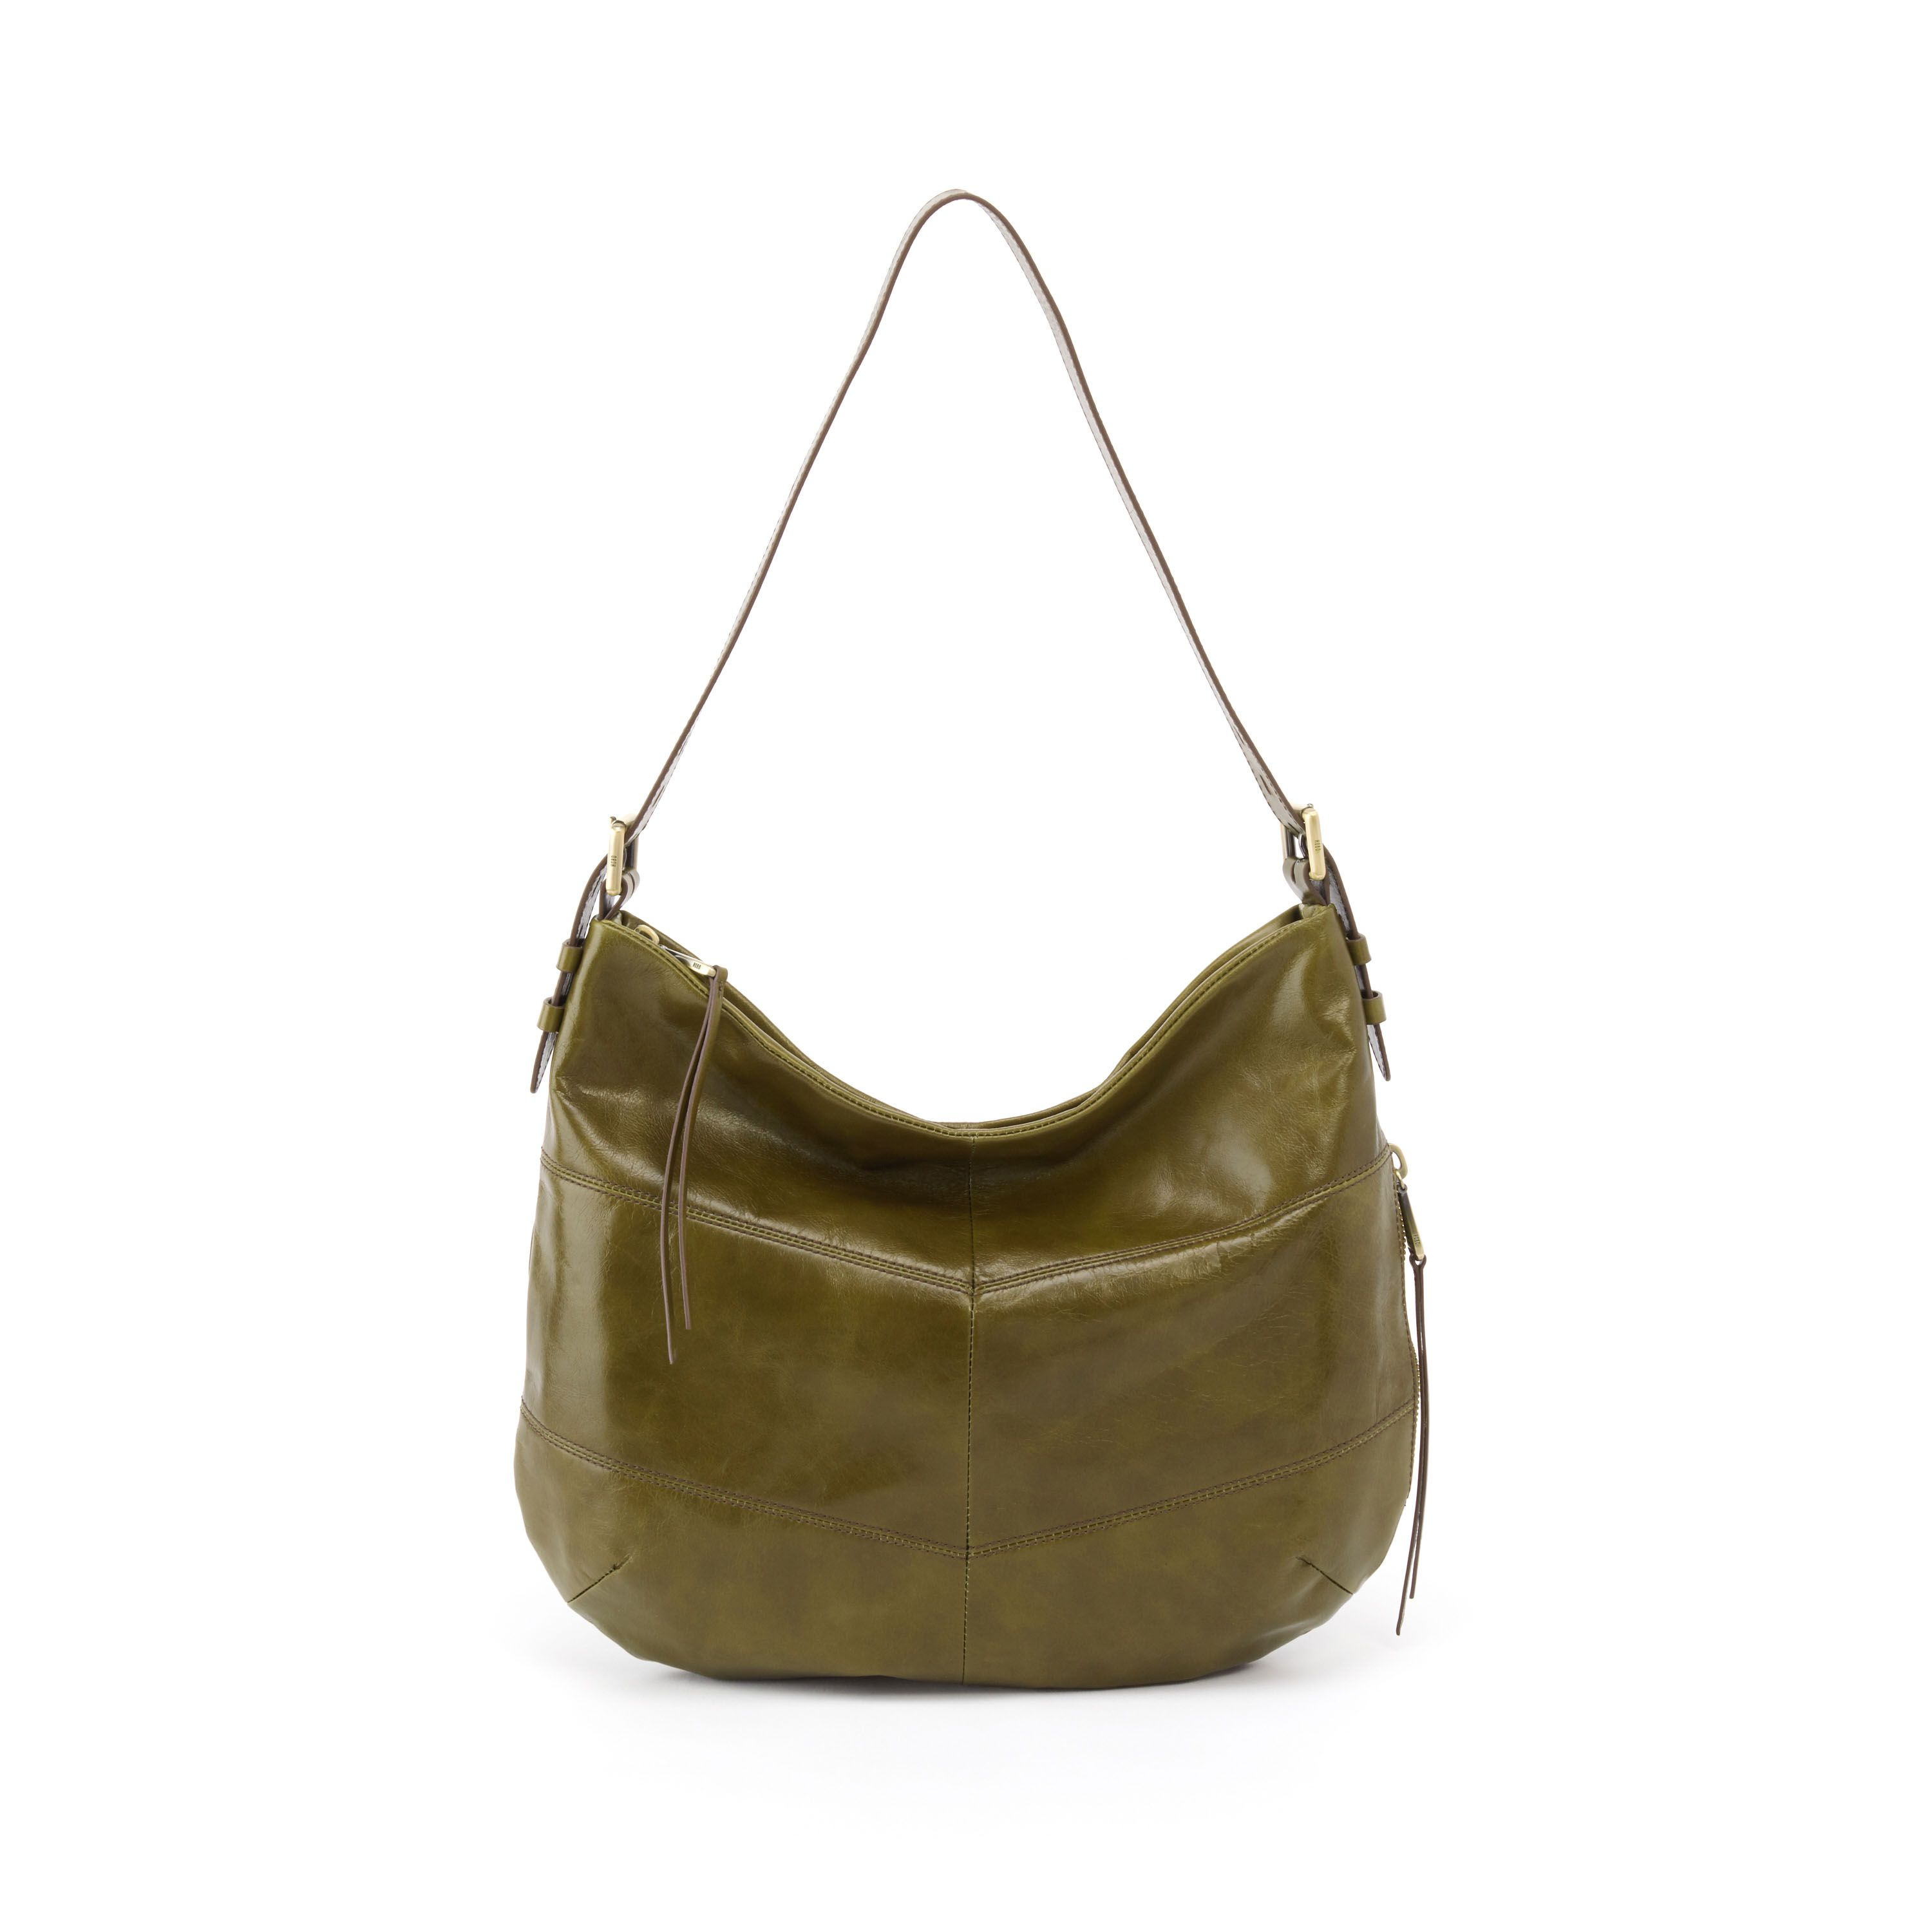 Our Serra bag in willow green leather has a slouchy hobo shape ... 6d55aaa9a0dcb